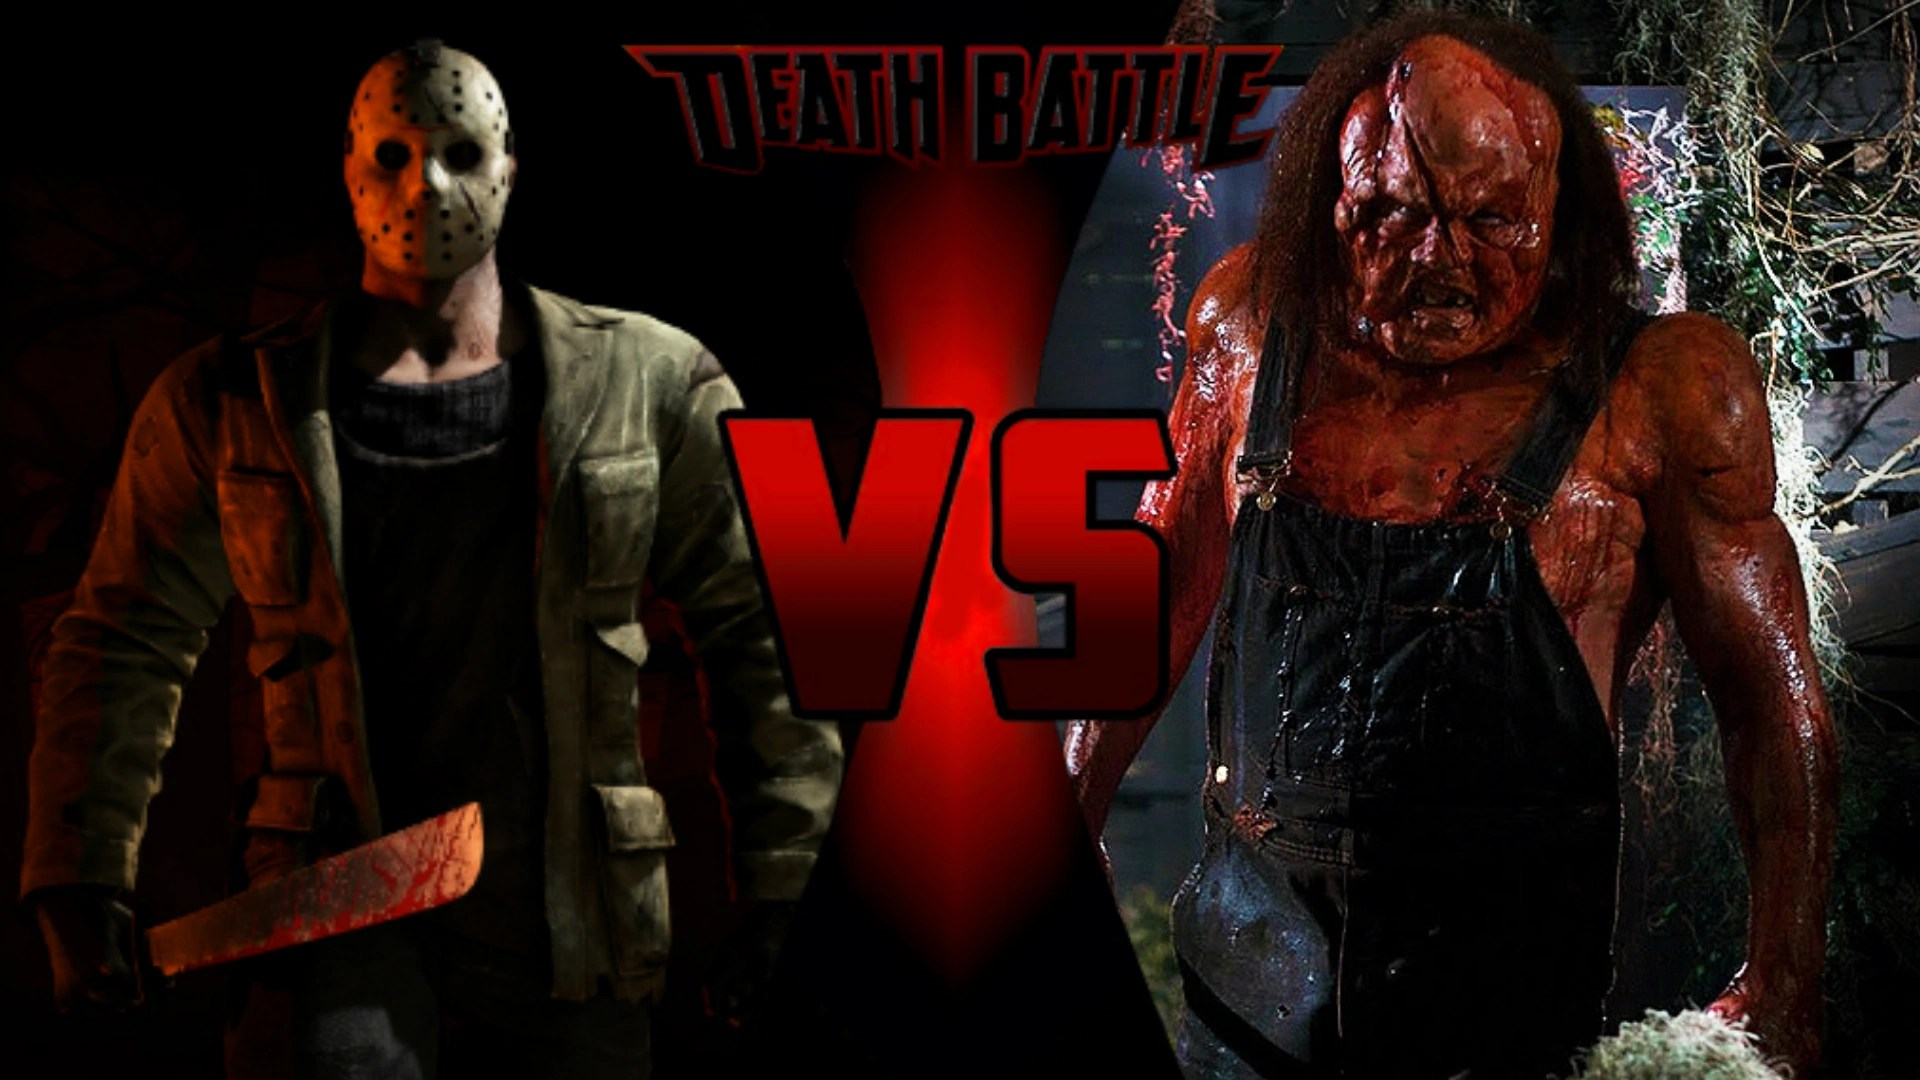 Monster University Wallpaper Hd Jason Voorhees Vs Victor Crowley Death Battle Fanon